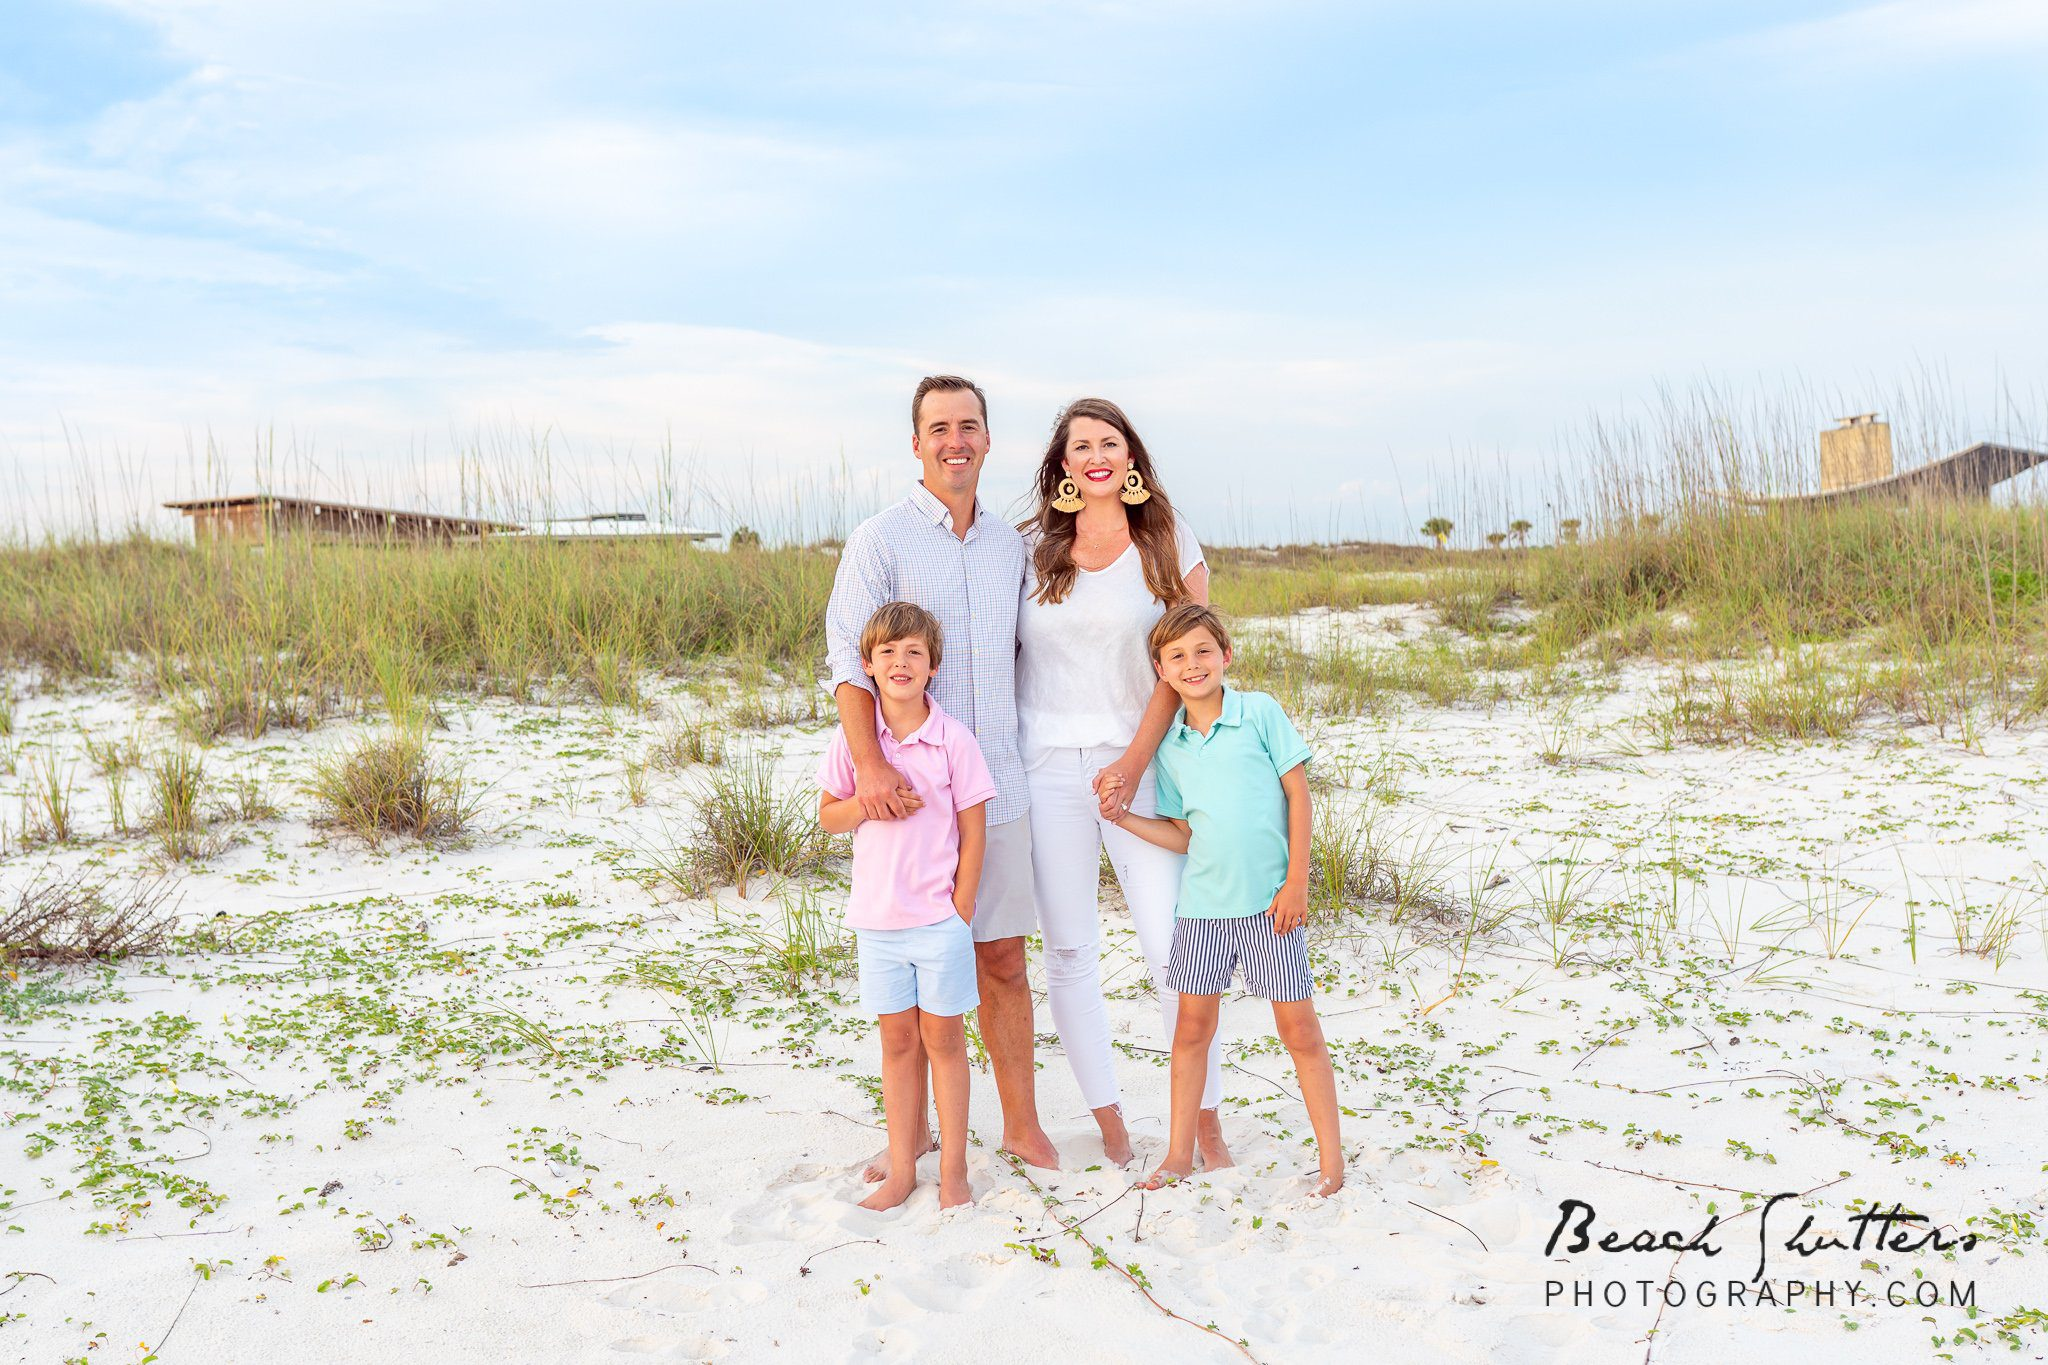 Beach shutters photography in Alabama